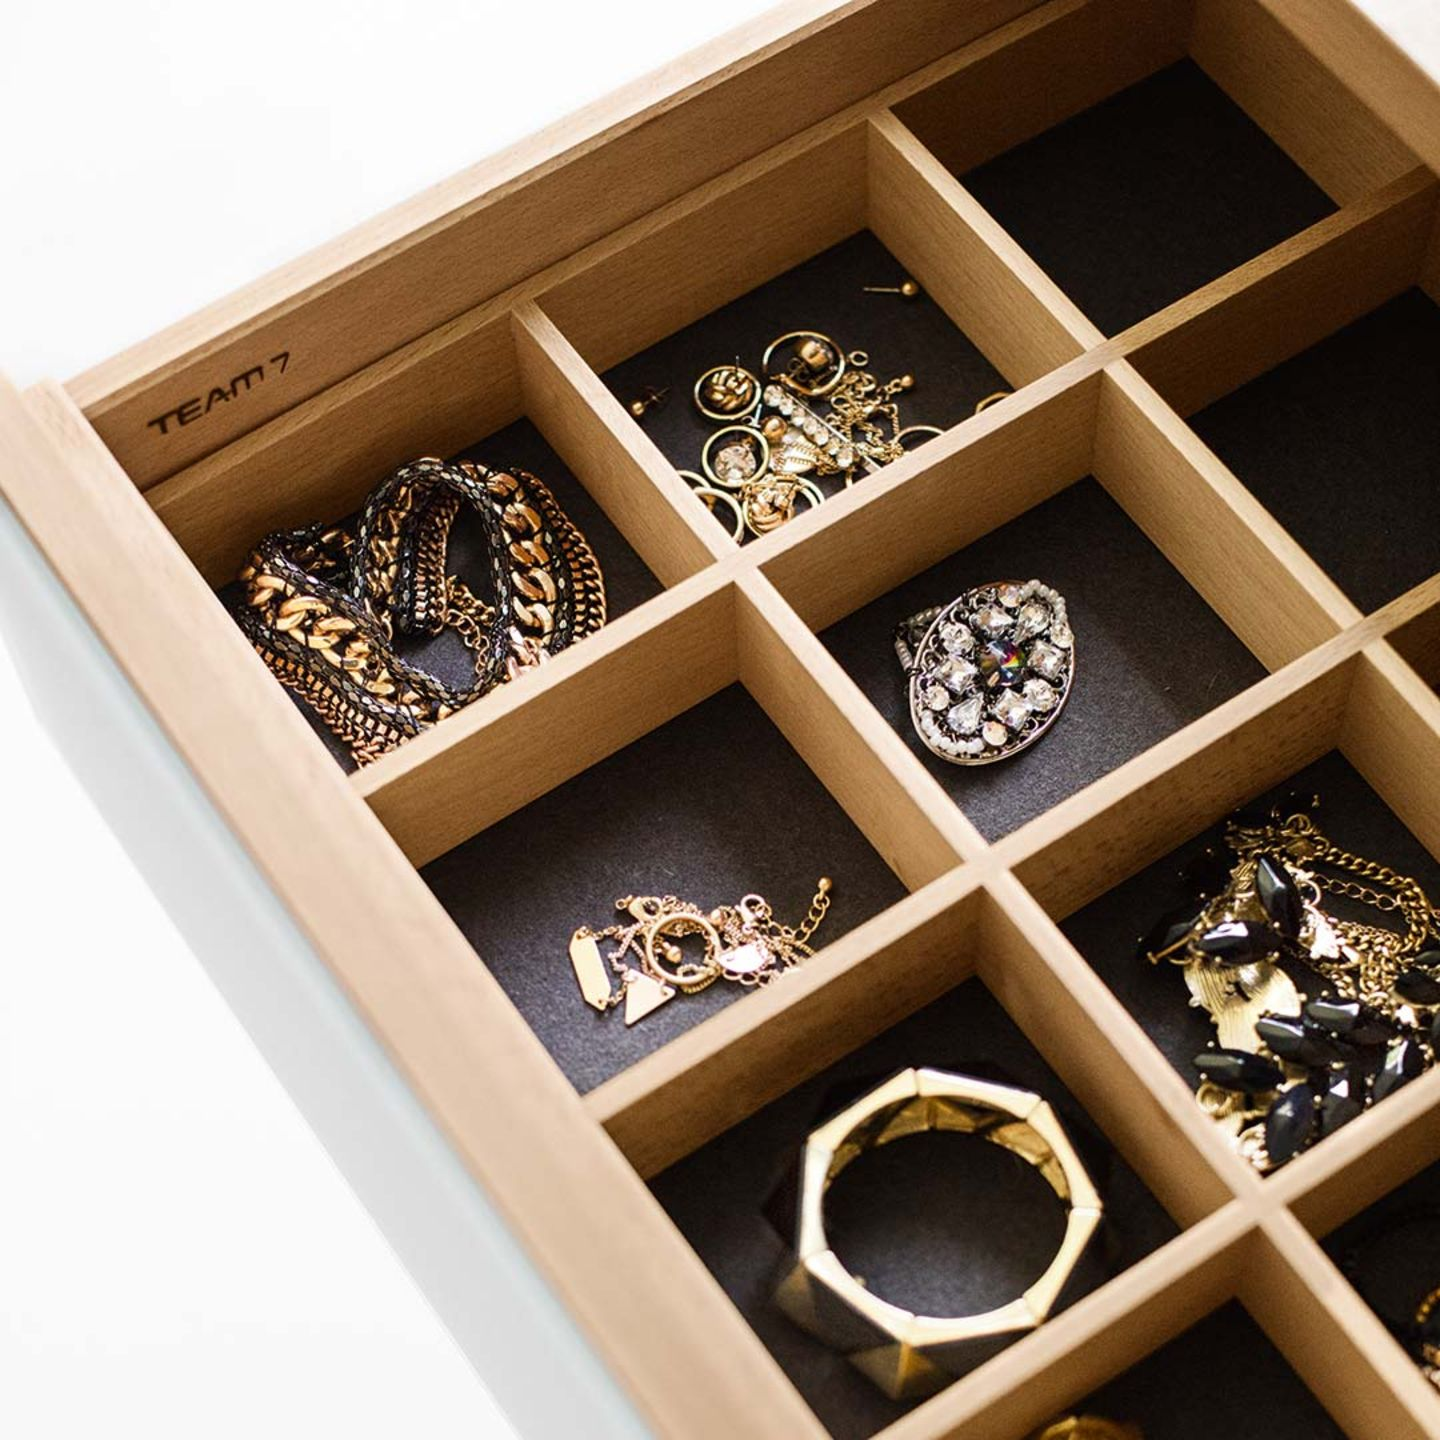 lunetto occasional furniture with drawer organisation for jewellery